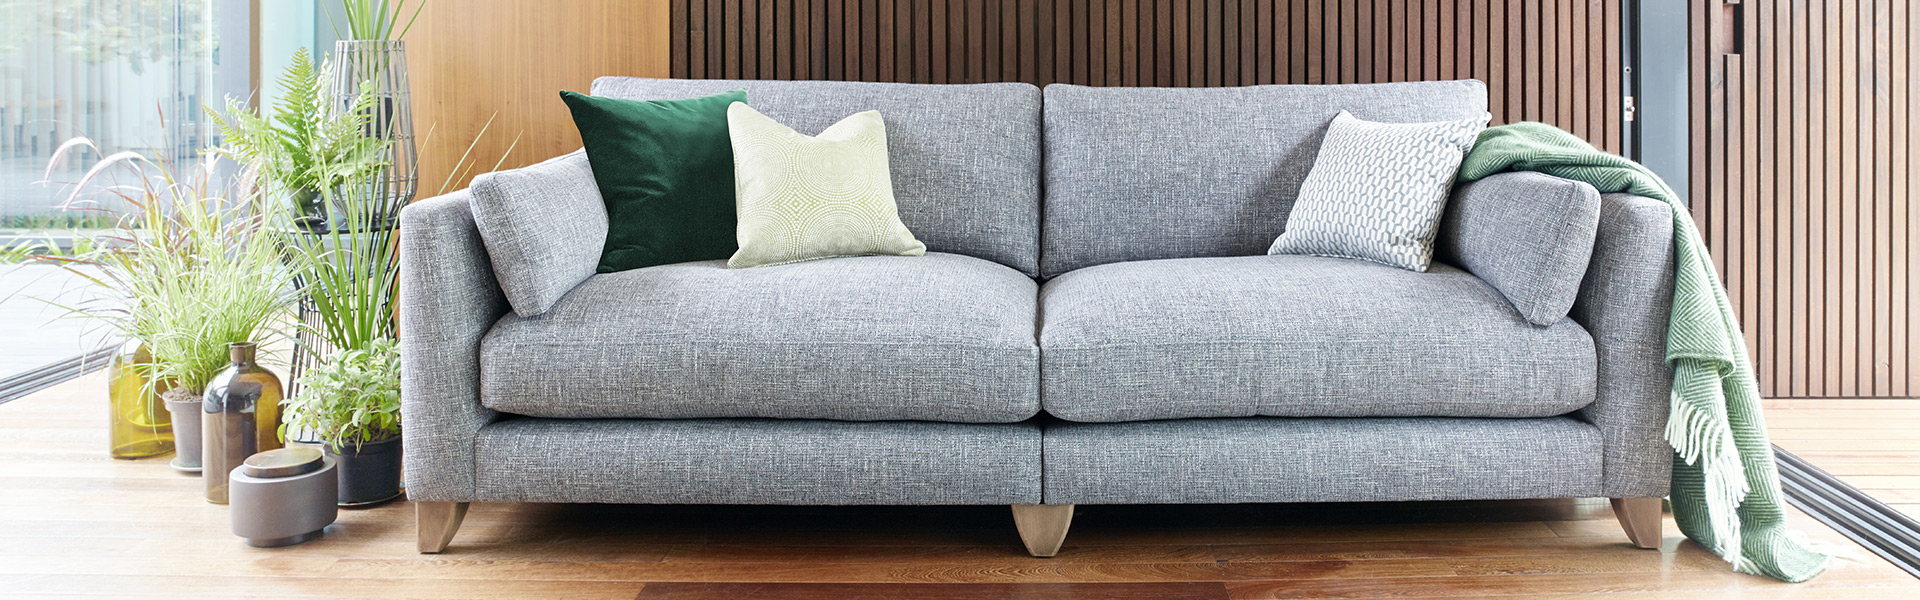 Most Recently Released Paloma Sofas With Cushions Pertaining To Meet Paloma (Gallery 3 of 25)